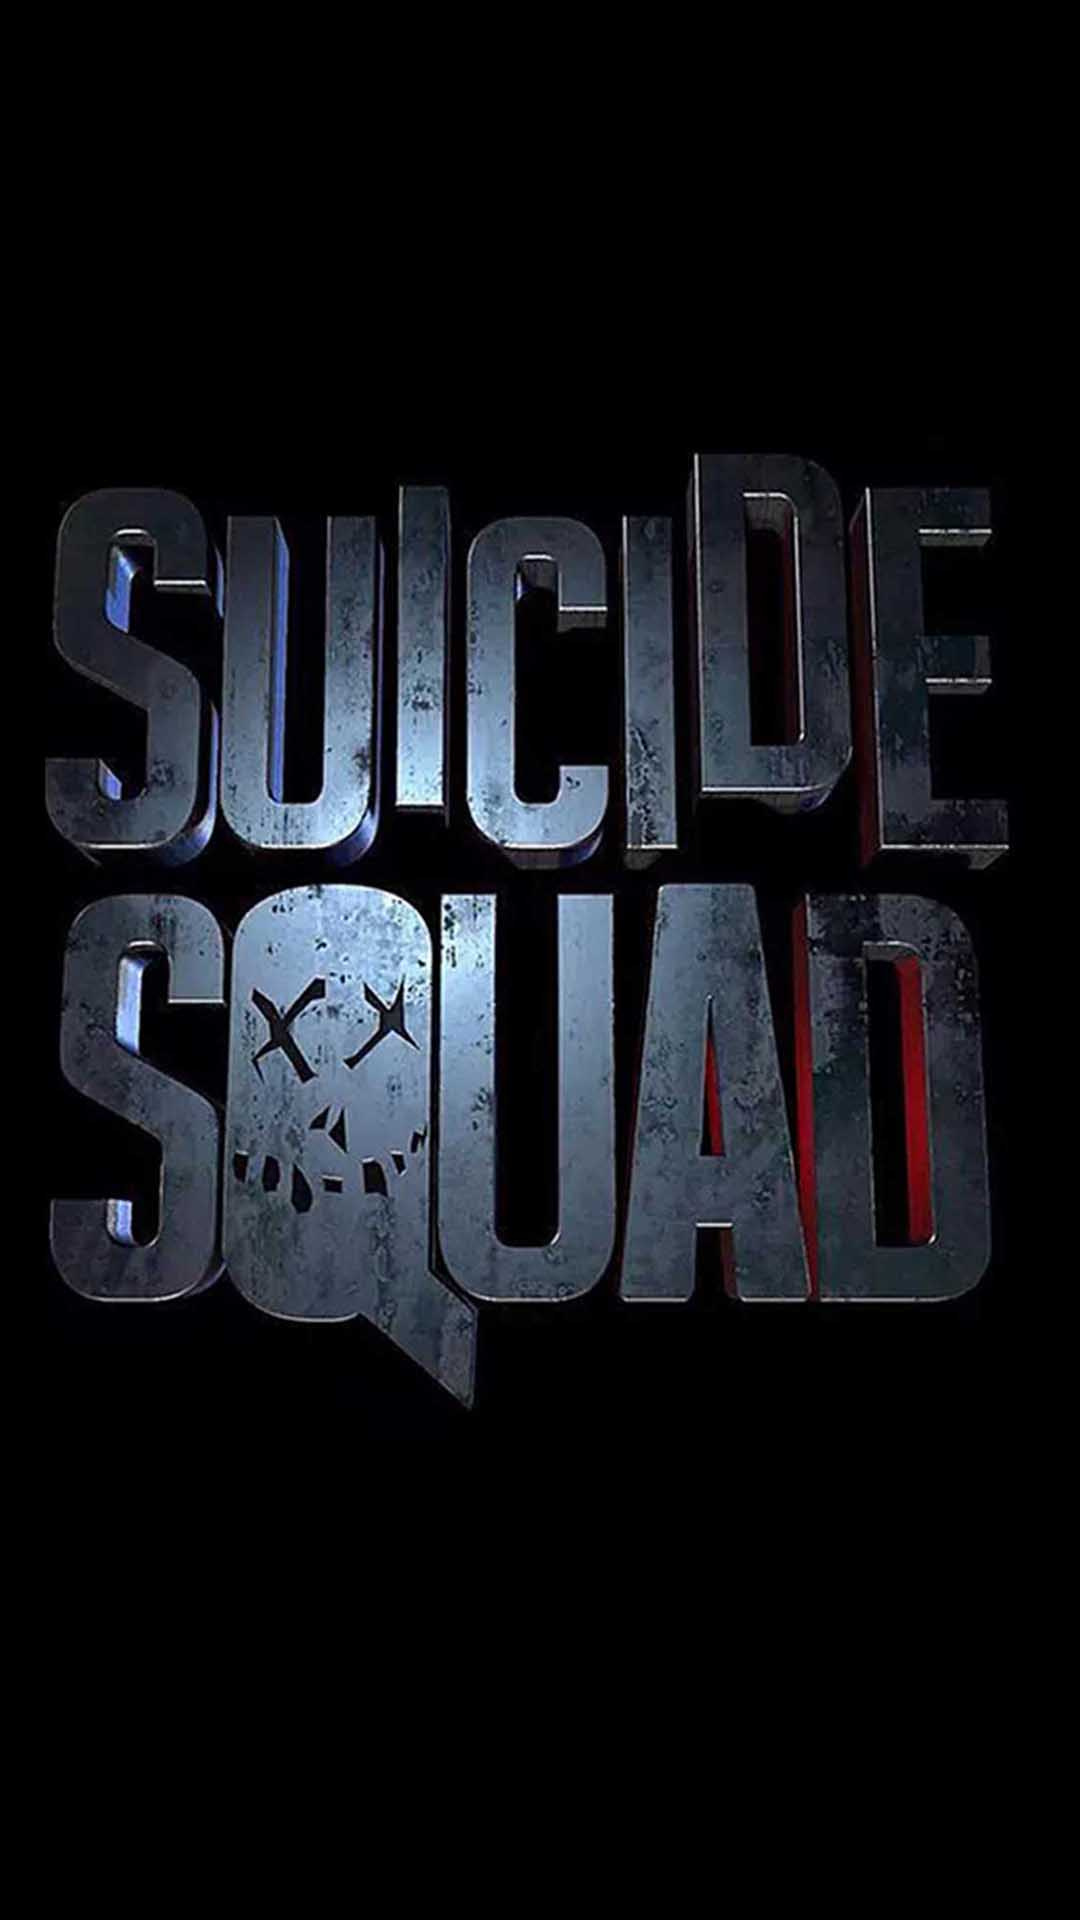 iPhone wallpaper suicide squad logo 3Wallpapers : notre sélection de fonds d'écran du 16/04/2018